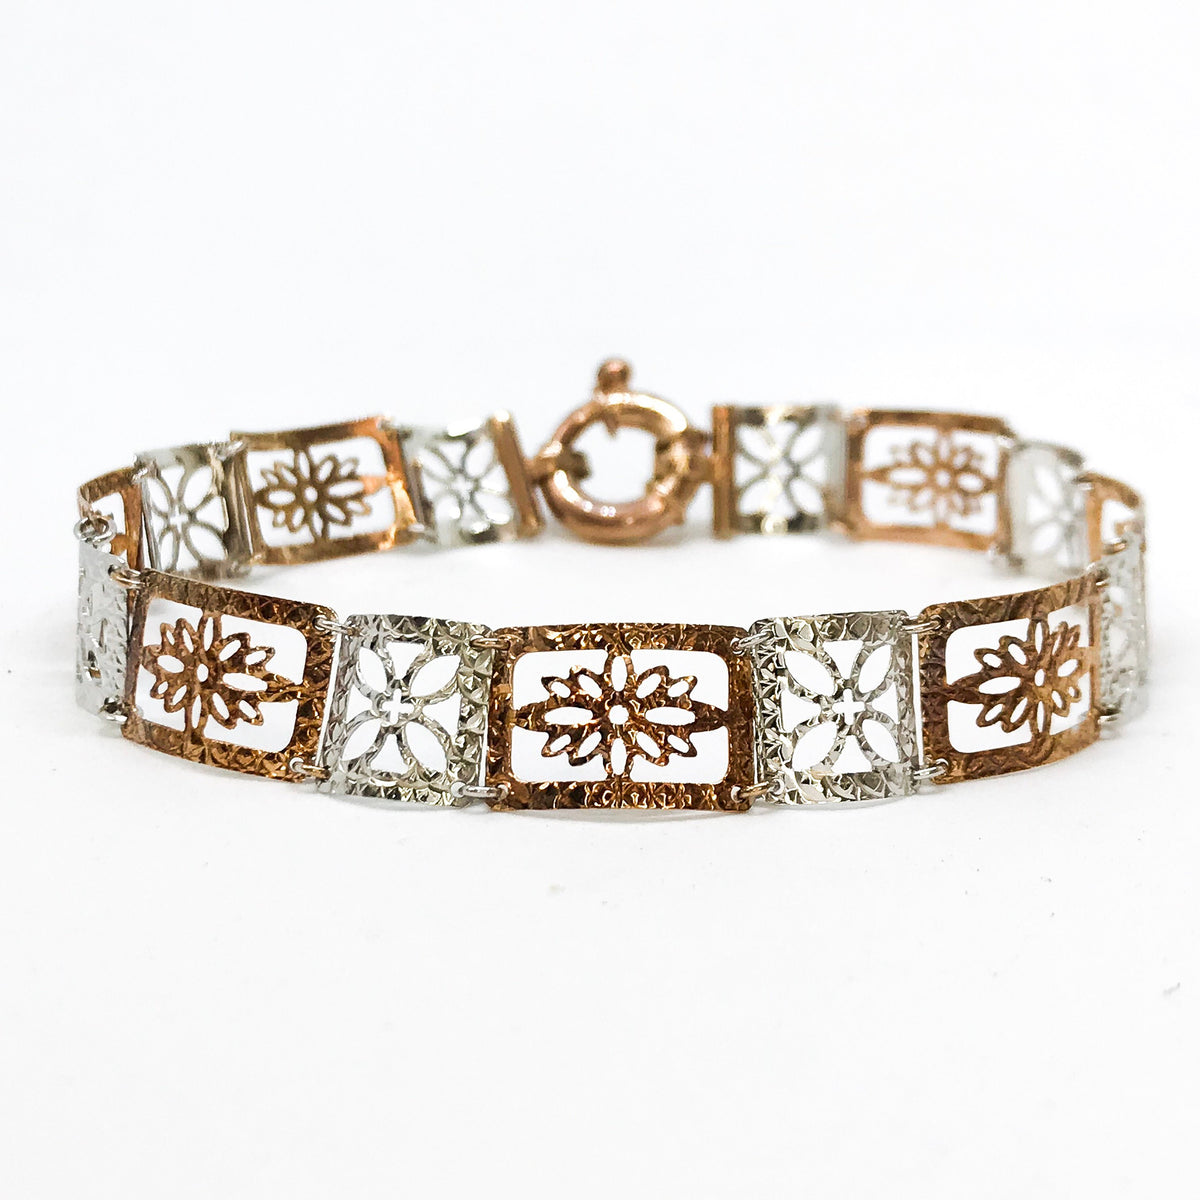 NEW .925 Sterling Silver  Layered with White and Rose Gold Thin Floral Bracelet - 7.5""